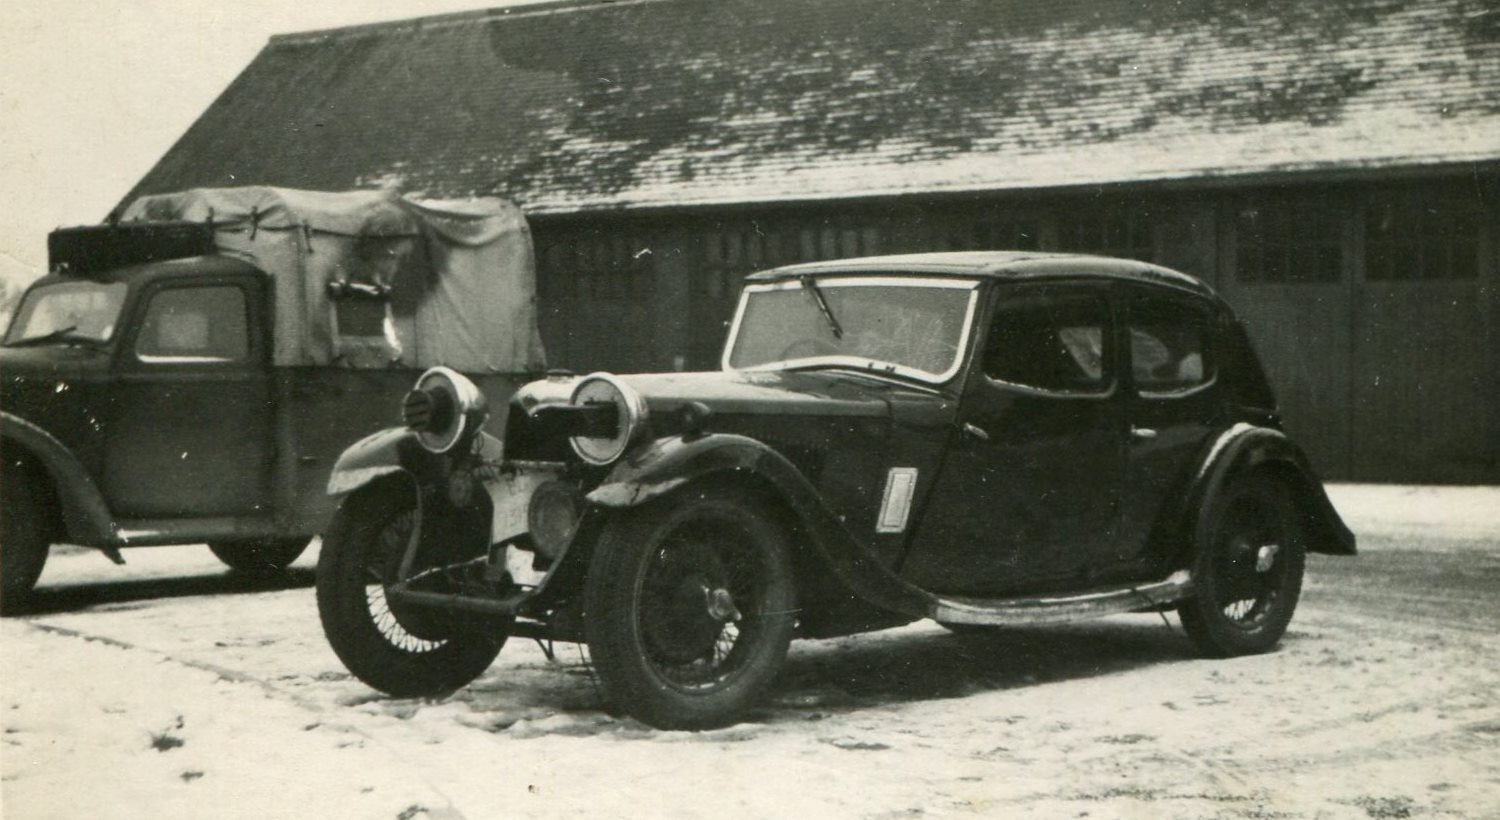 1940s car but what is it